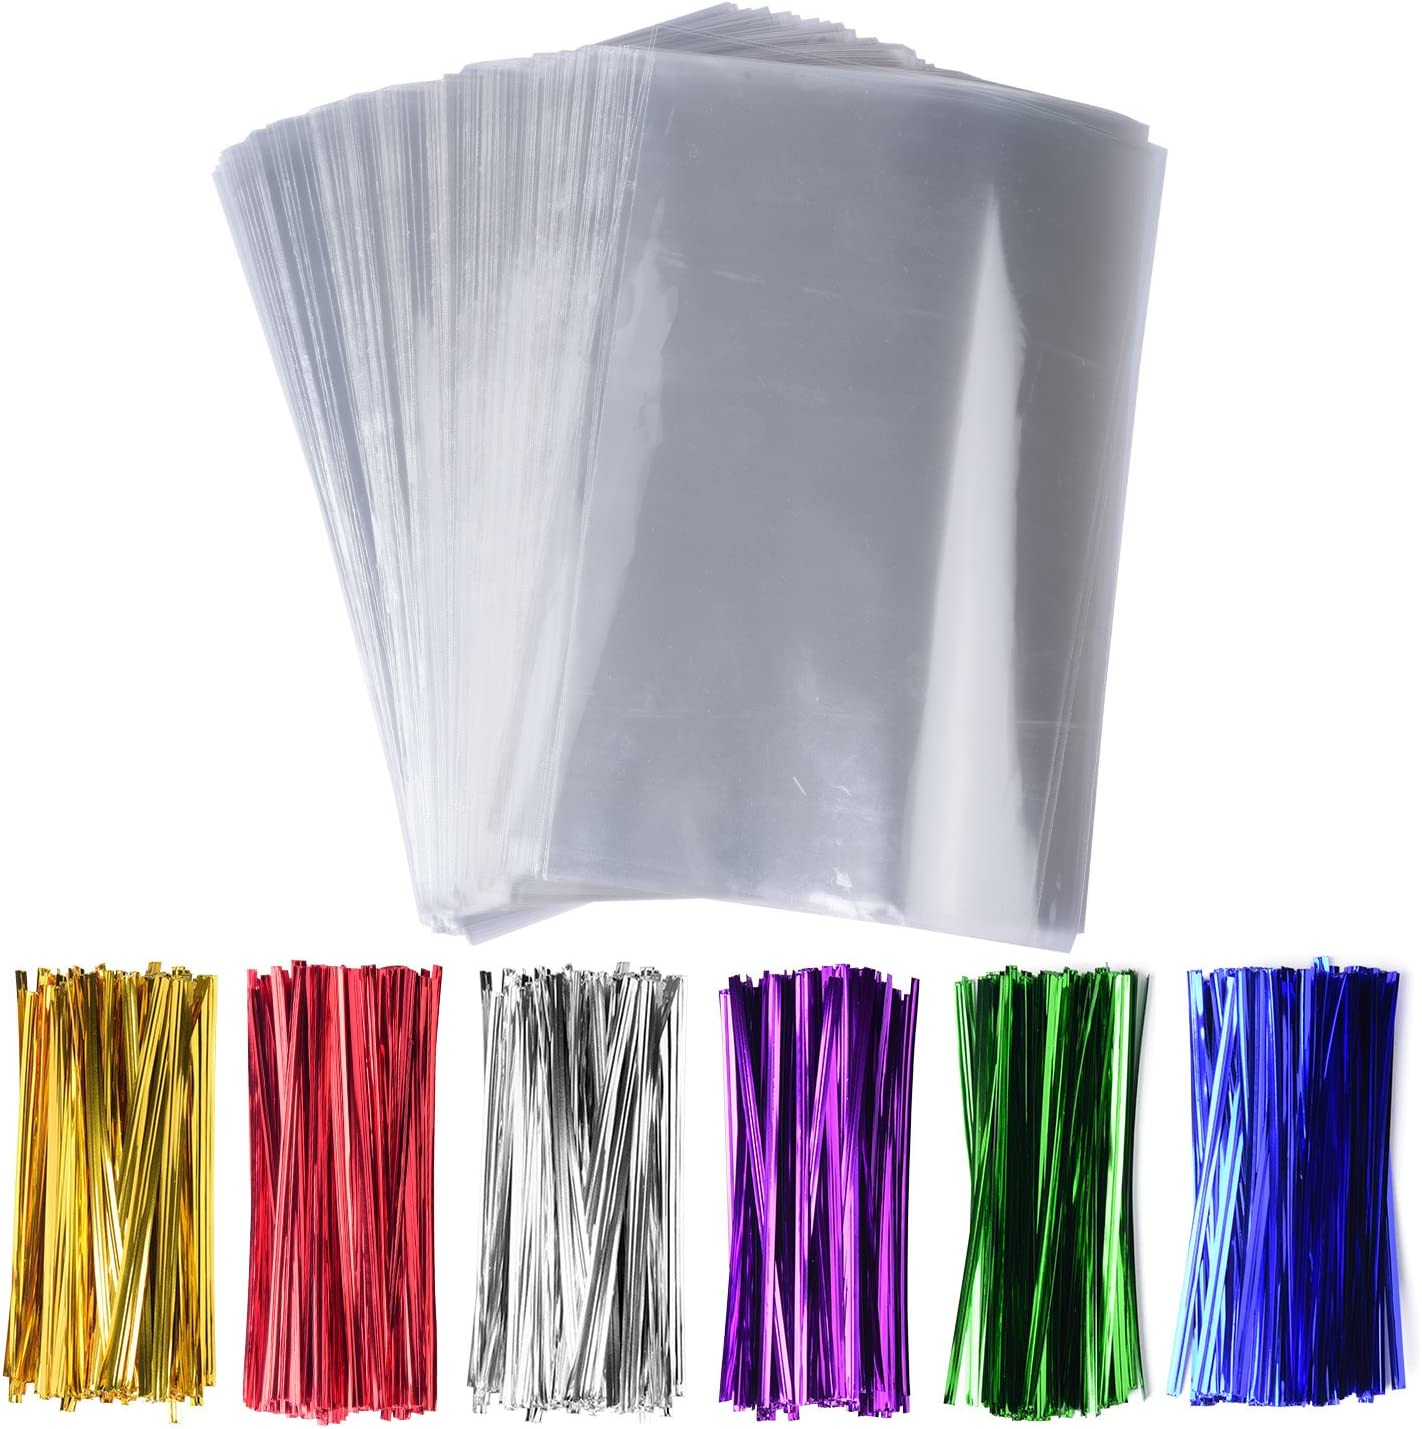 """200 Pack 6"""" x 9"""" Clear Cello Treat Bags 1.4mil OPP Plastic Bags with 6 Mix Colors Twist Ties Good for Wedding Cookie Gift Candy Bakery Supply Valentine Chocolates (6'' x 9'')"""